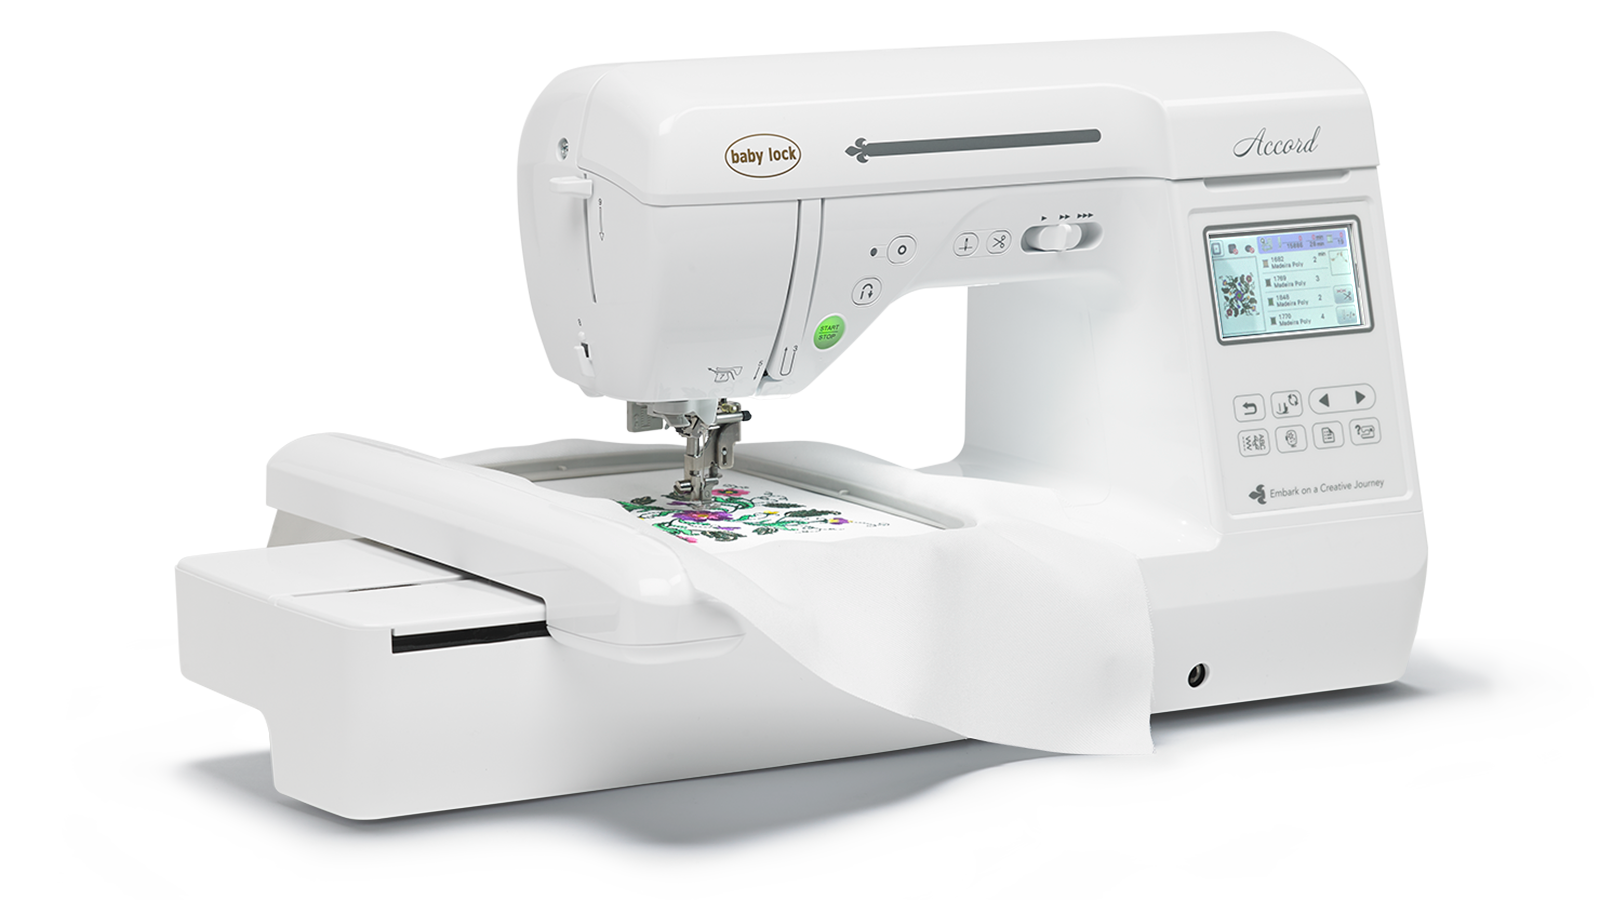 BabyLock Accord - Sewing & Embroidery Machine - BLMCC